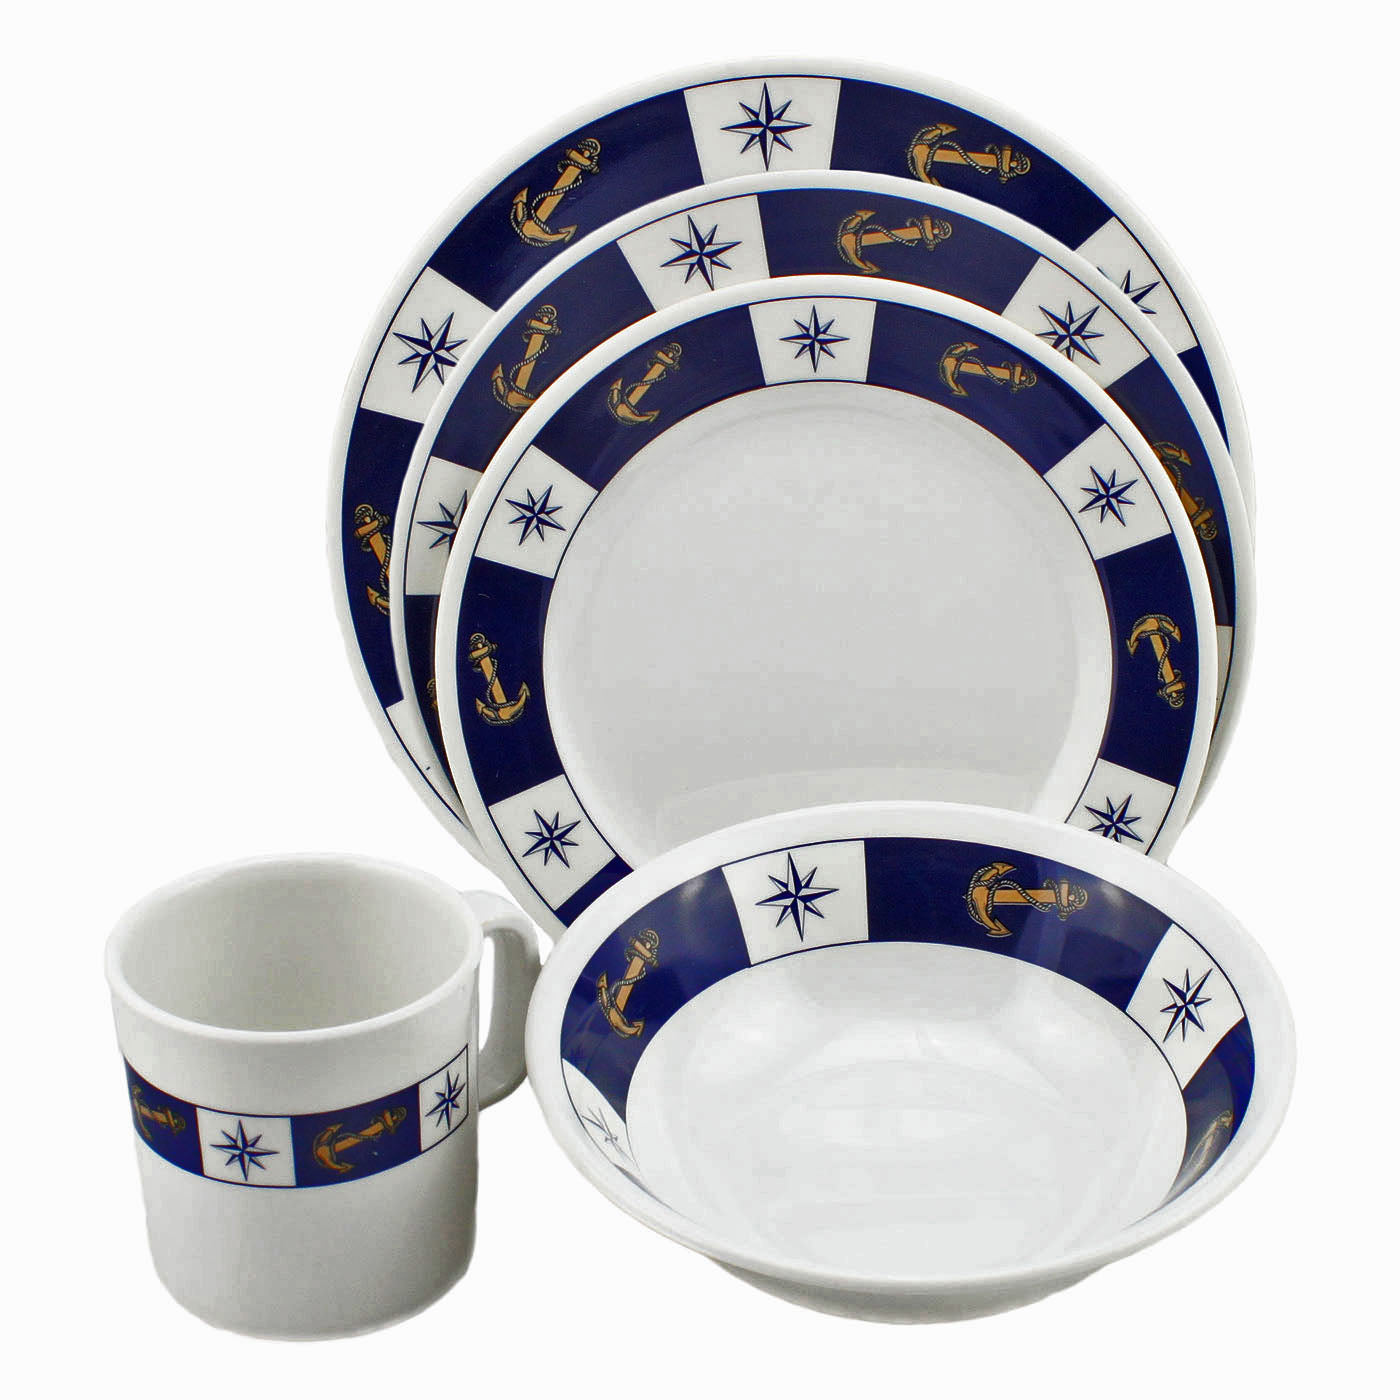 Boating Galleyware Dish Set